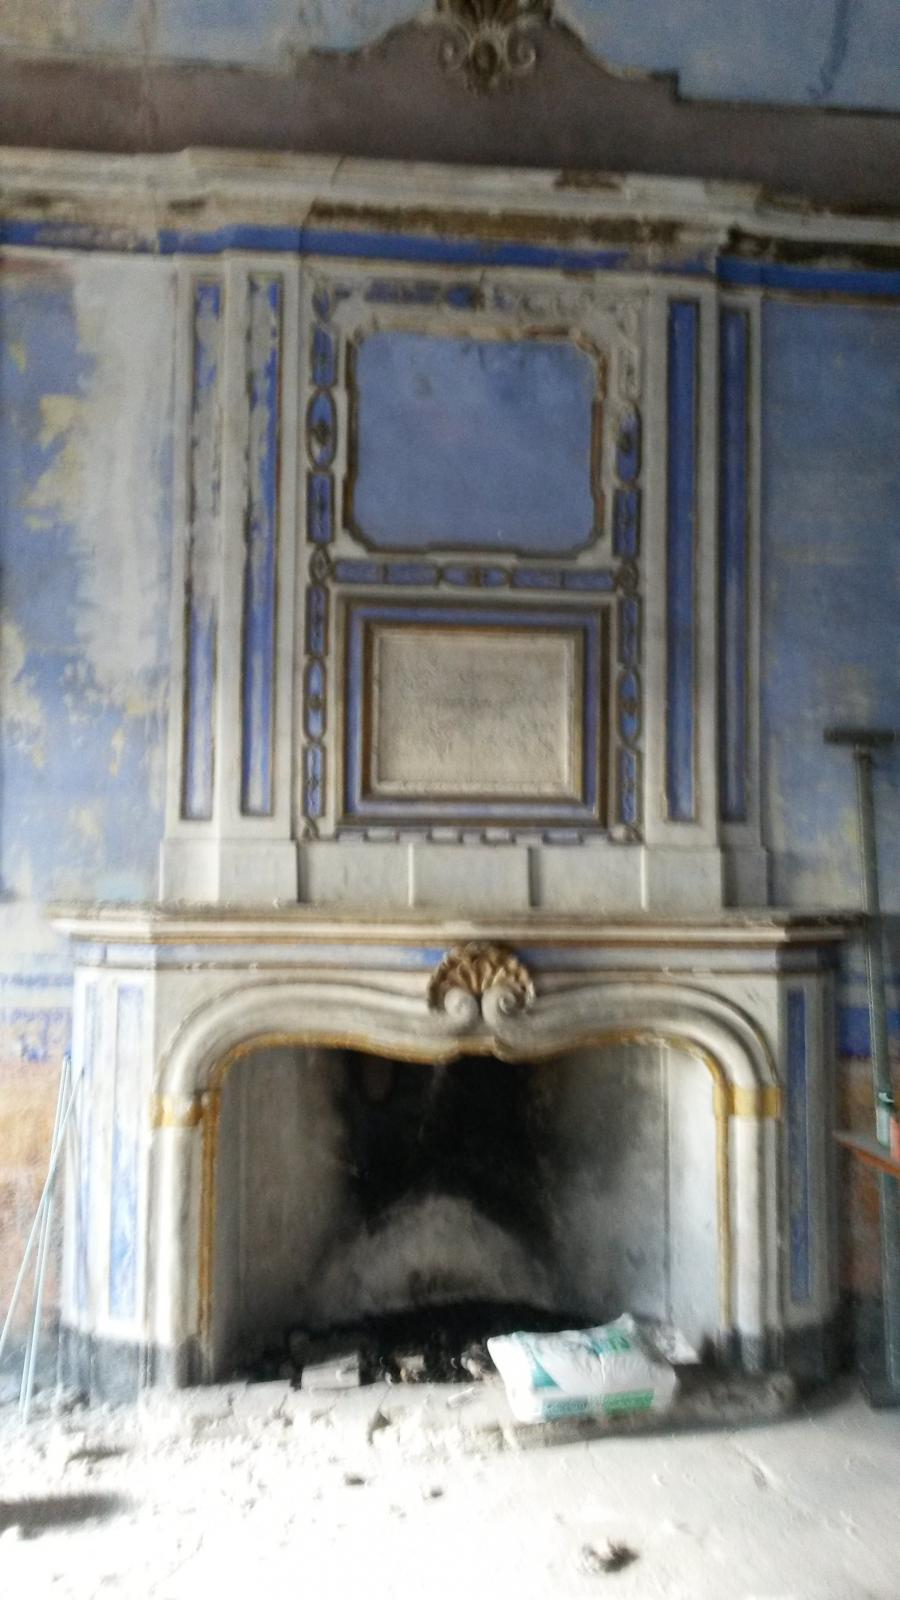 Photo 2 - Fireplace